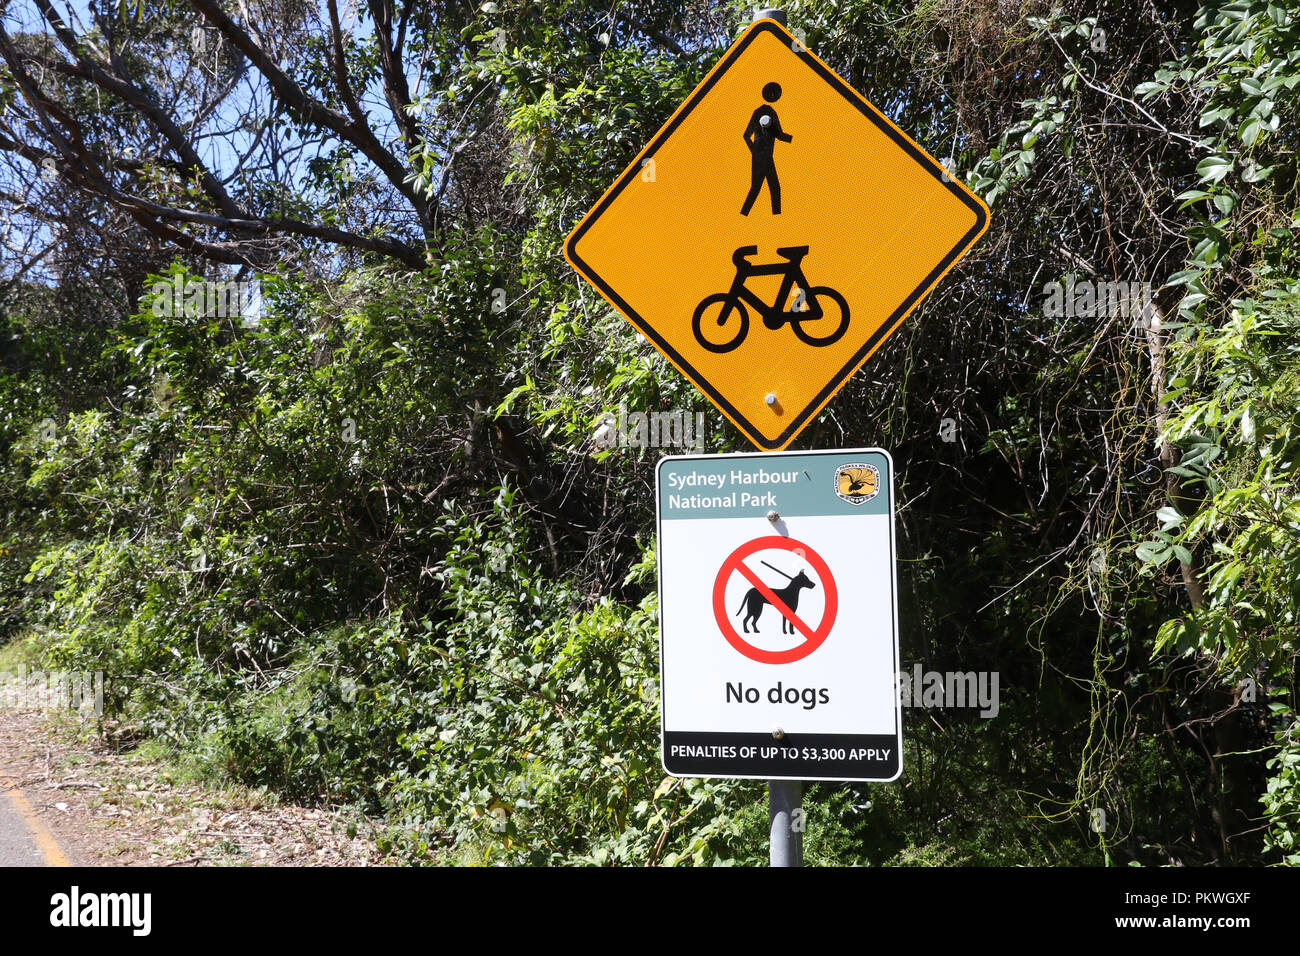 Australian road sign (W6-9) Pedestrians and Cyclists and Sydney Harbour National Park no dogs sign on Chowder Bay Road, Mosman. - Stock Image